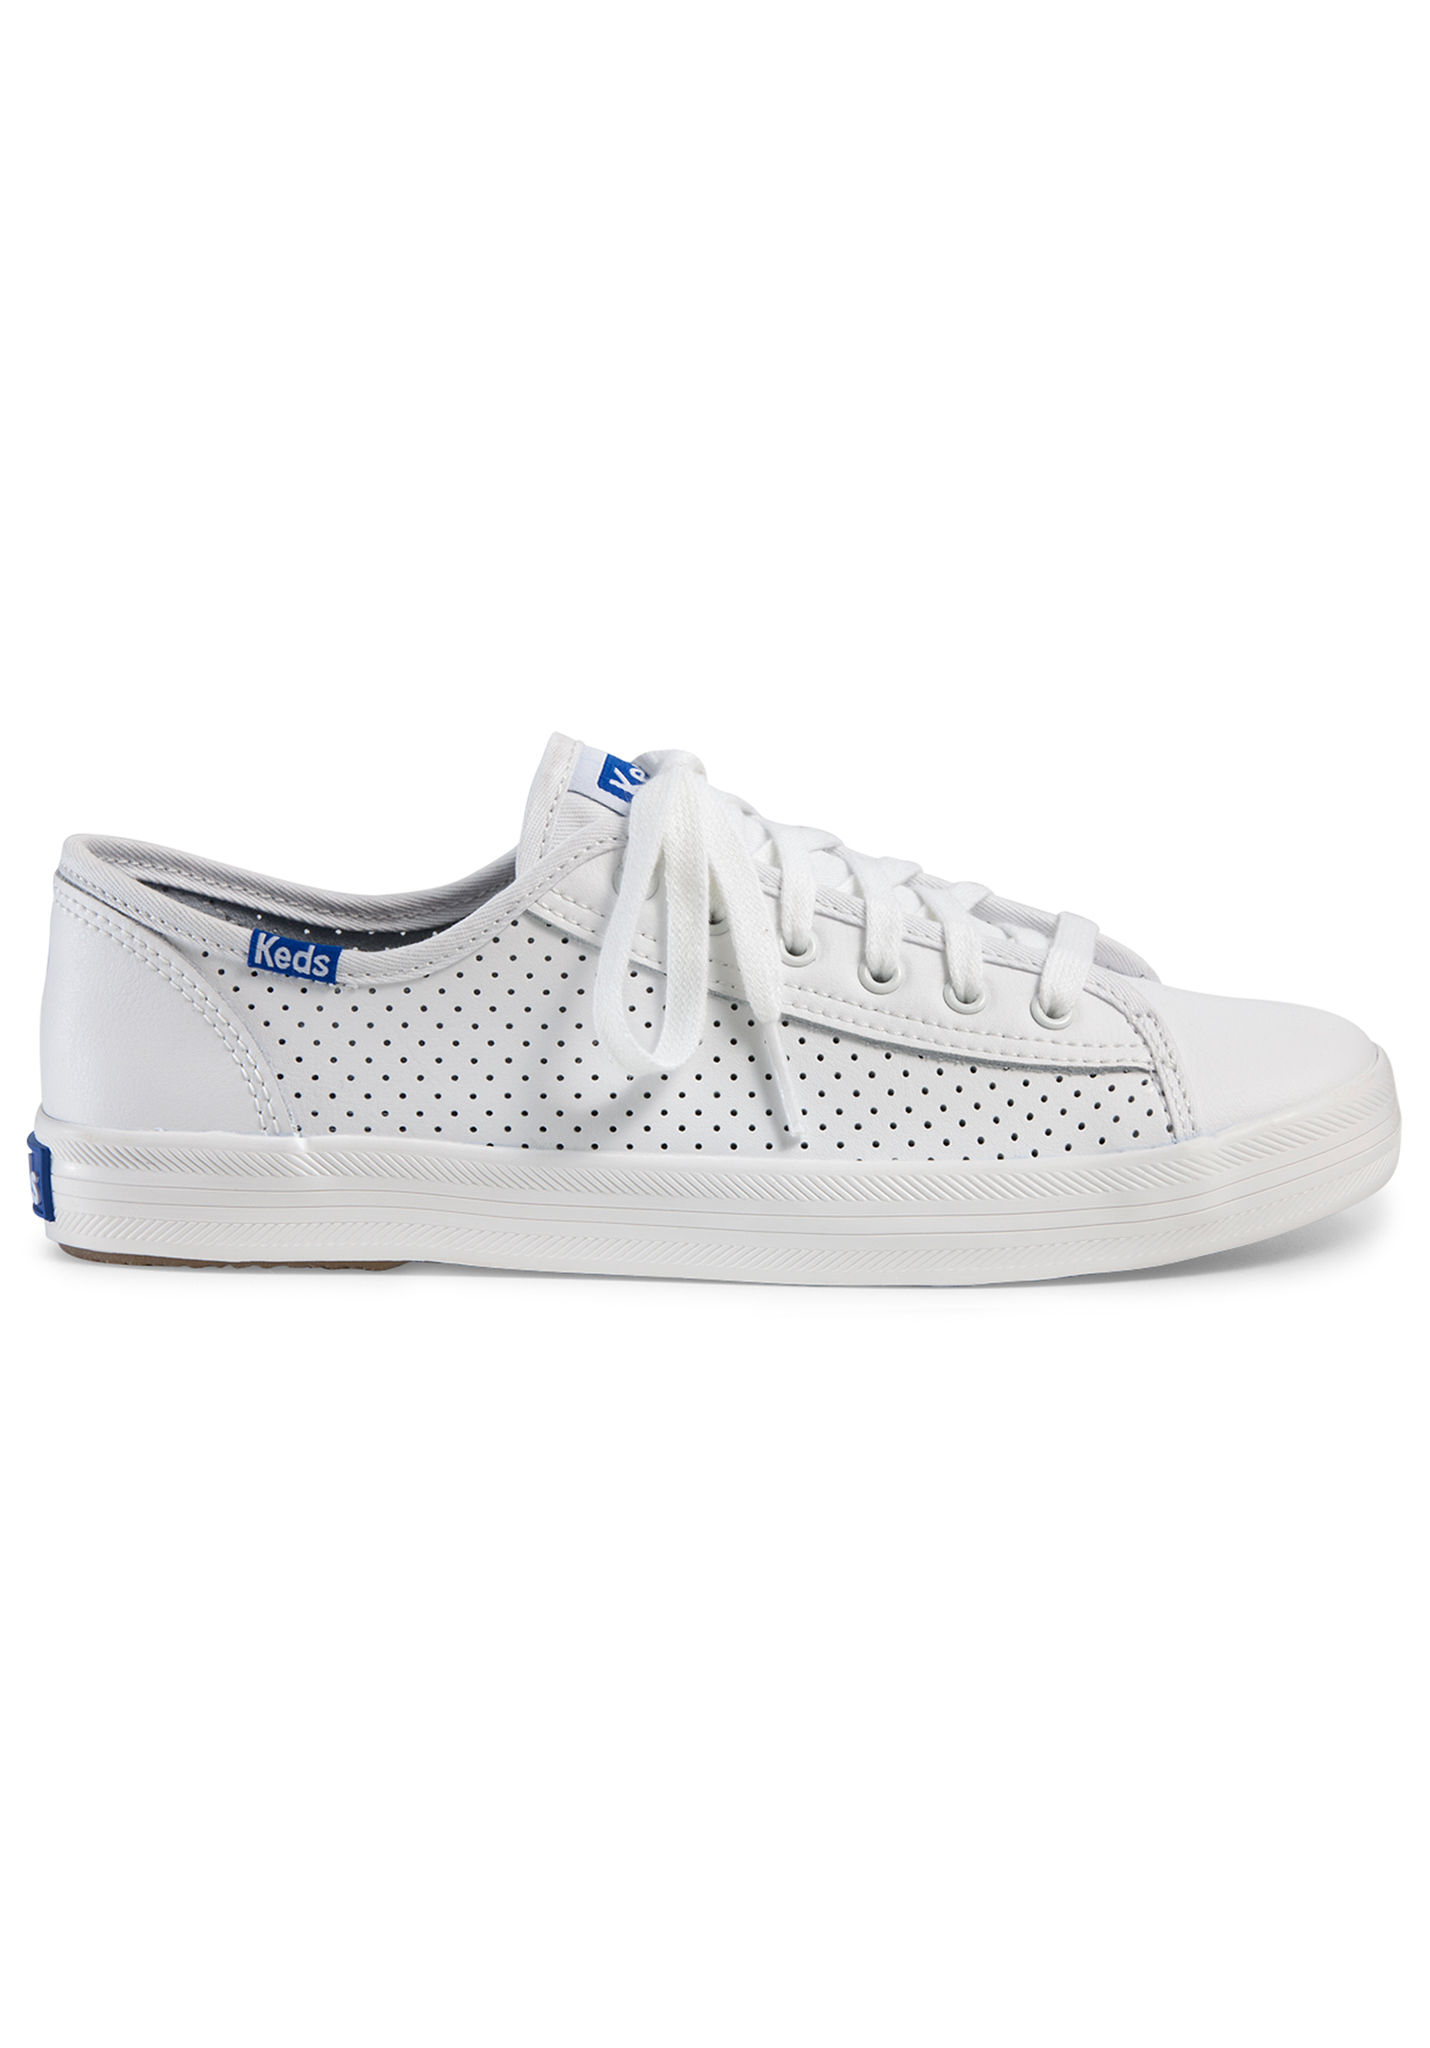 Planet Retro Sneakers White Perf Women Lea Kickstart Keds For H7q85Hn